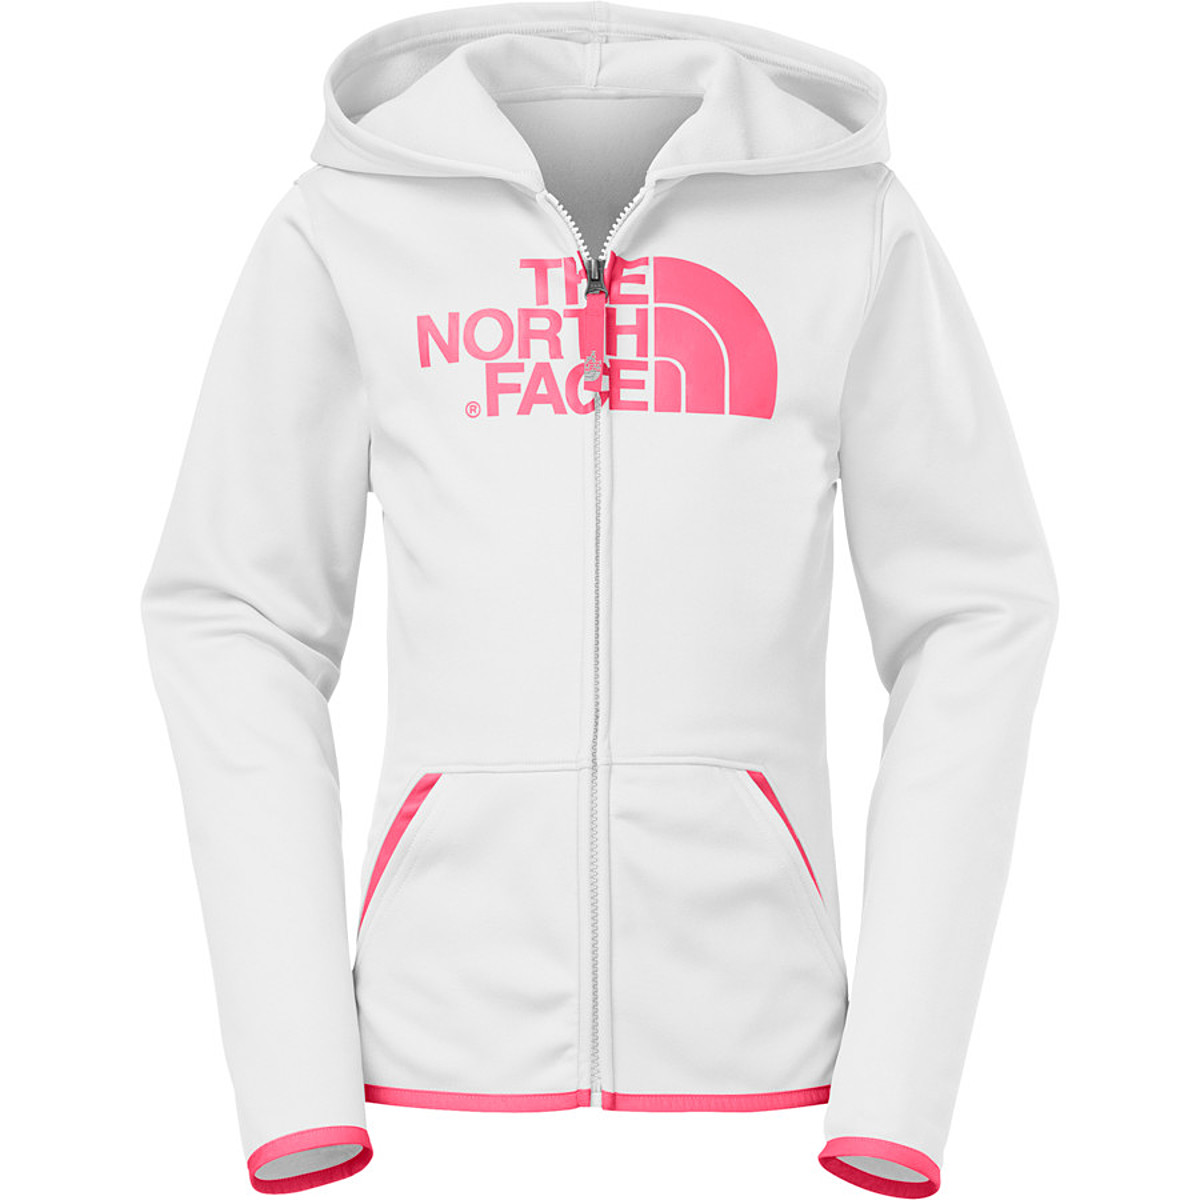 The North Face Performance Full Zip Hoodie